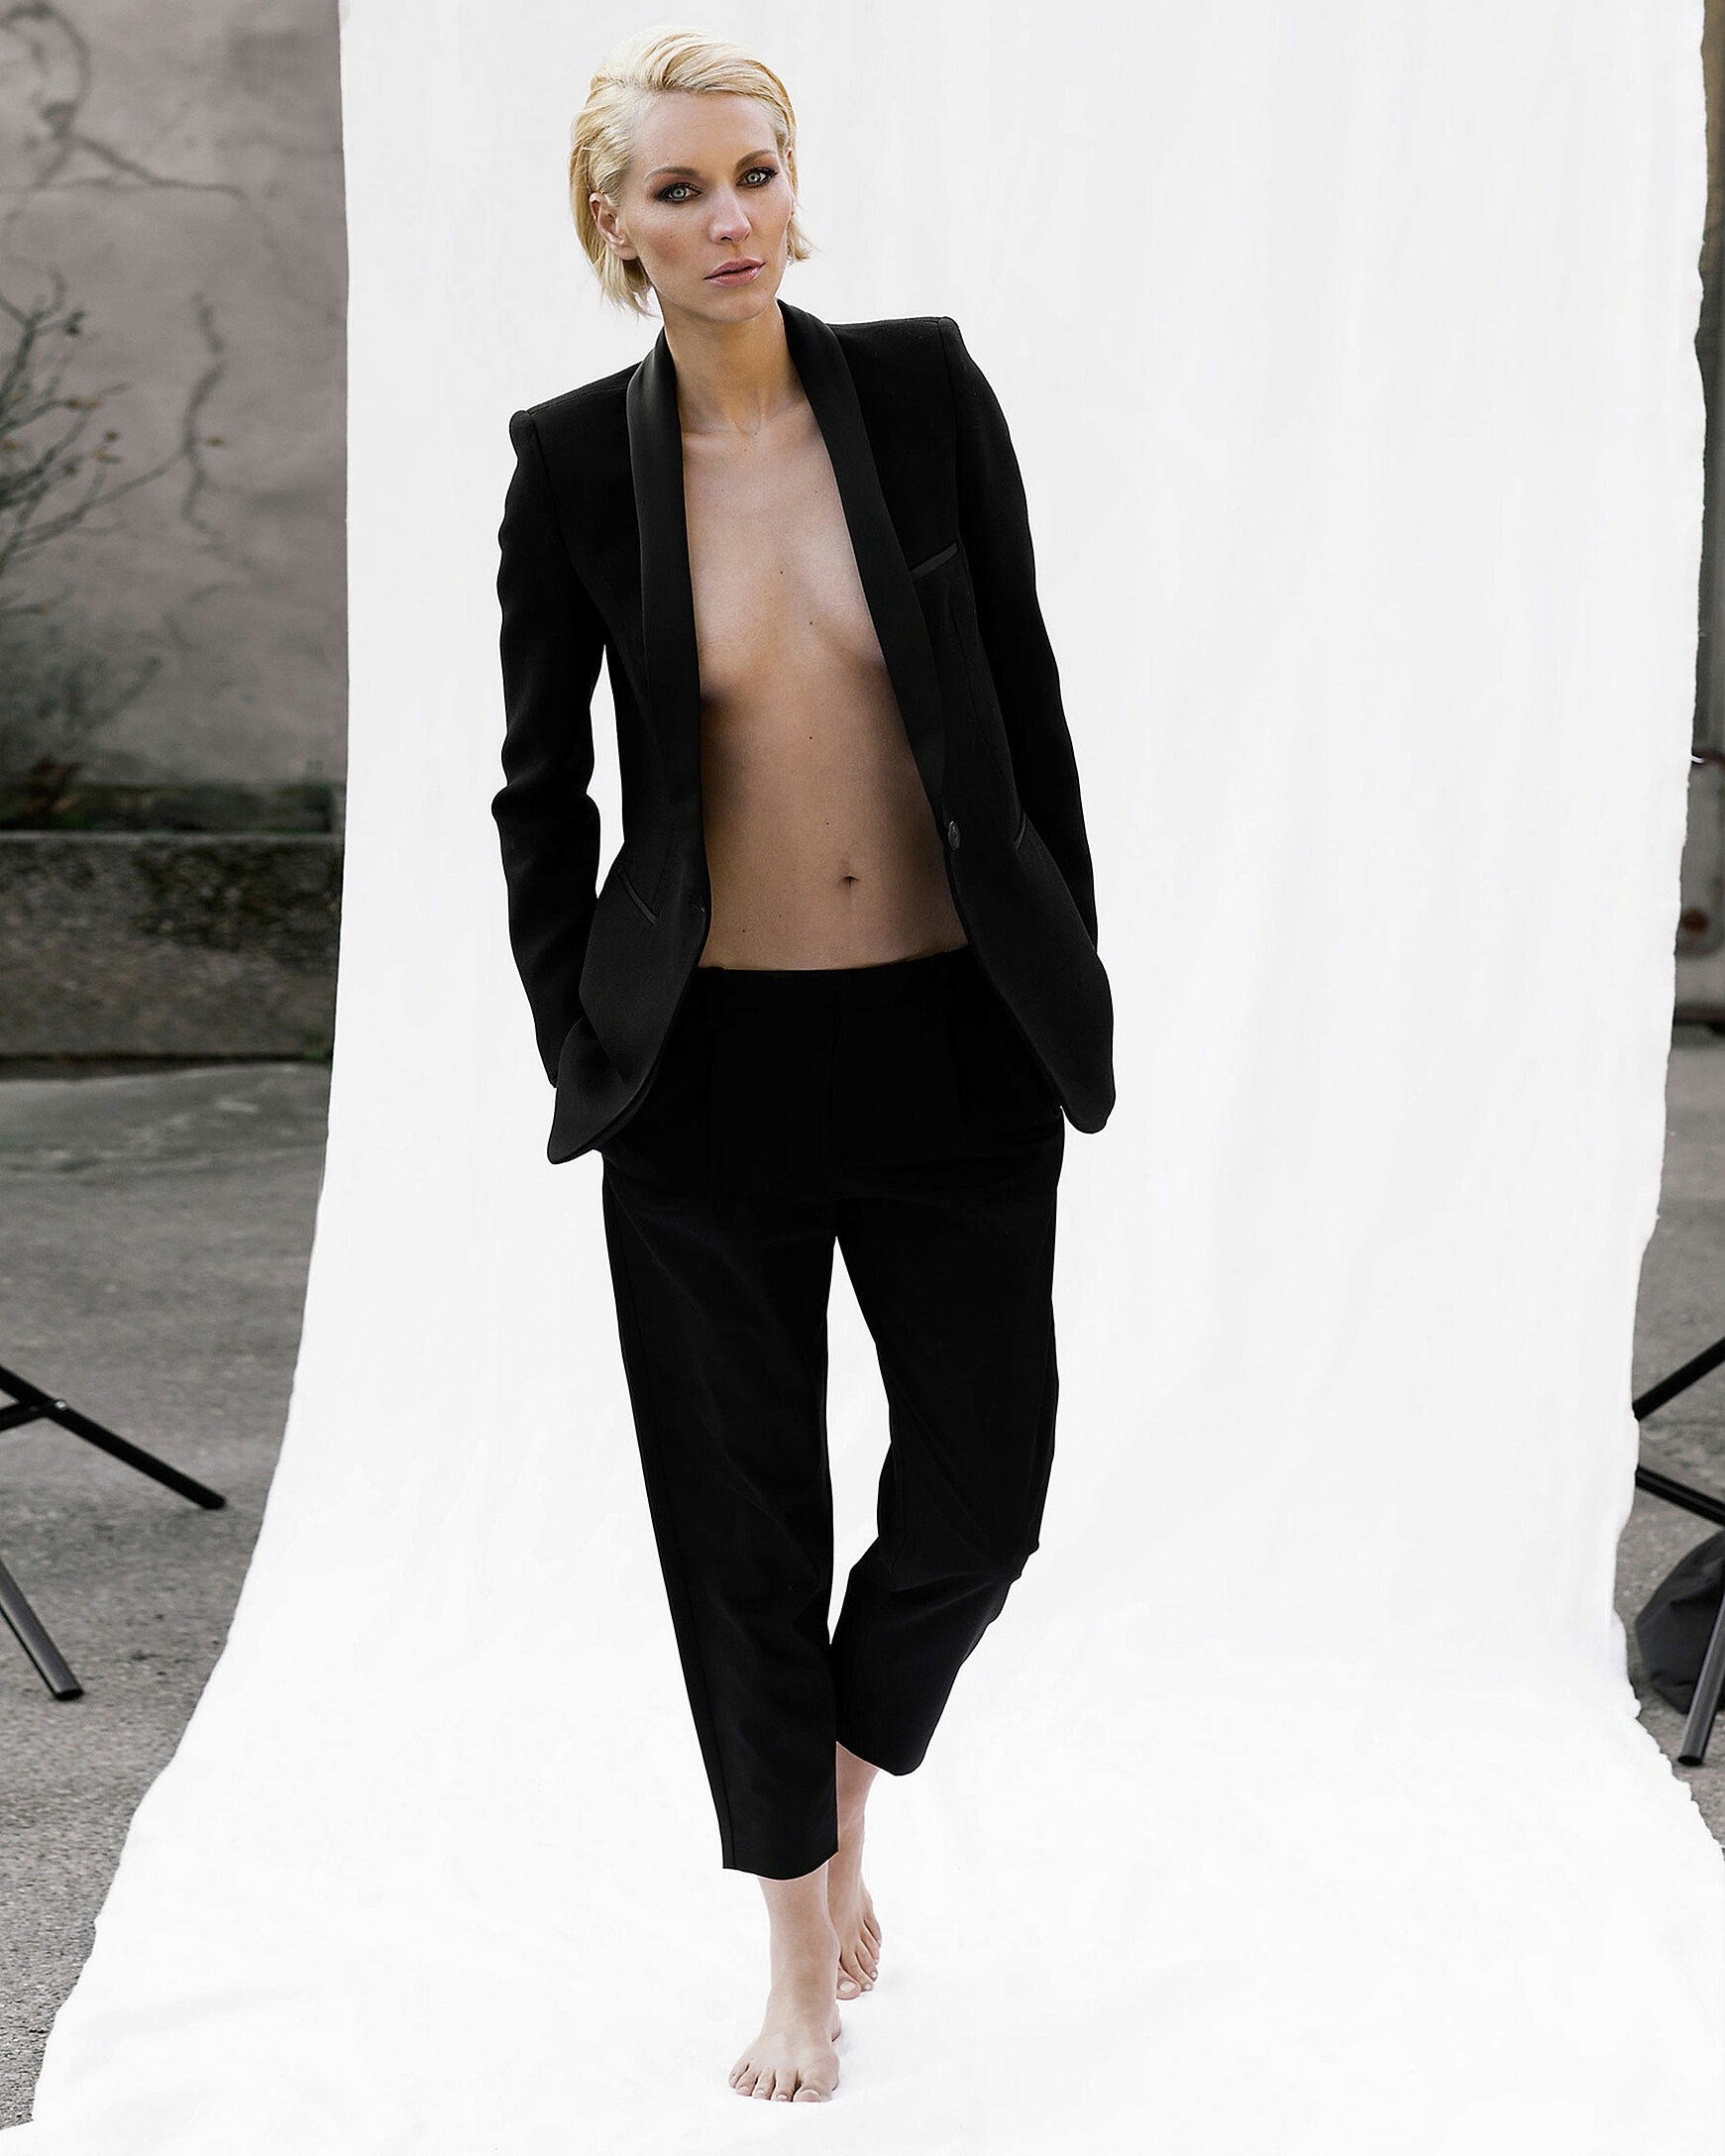 A blonde woman in a black suit with nothing else in front of a white background